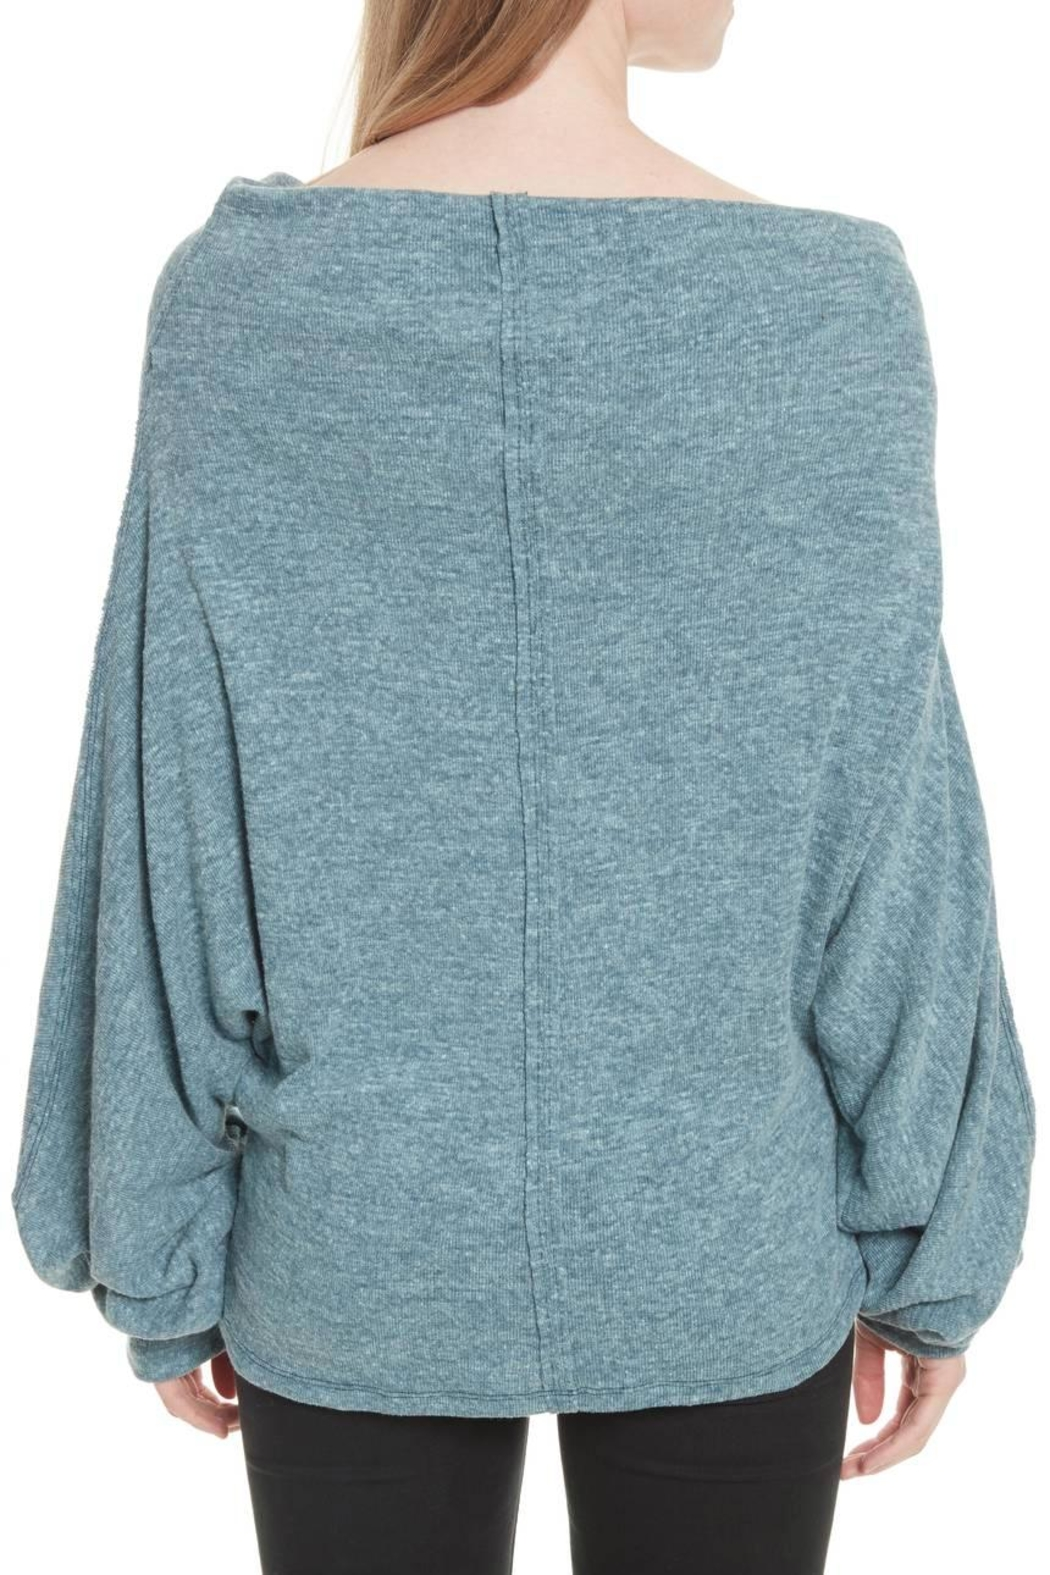 Free People Skyline Thermal Top - Back Cropped Image